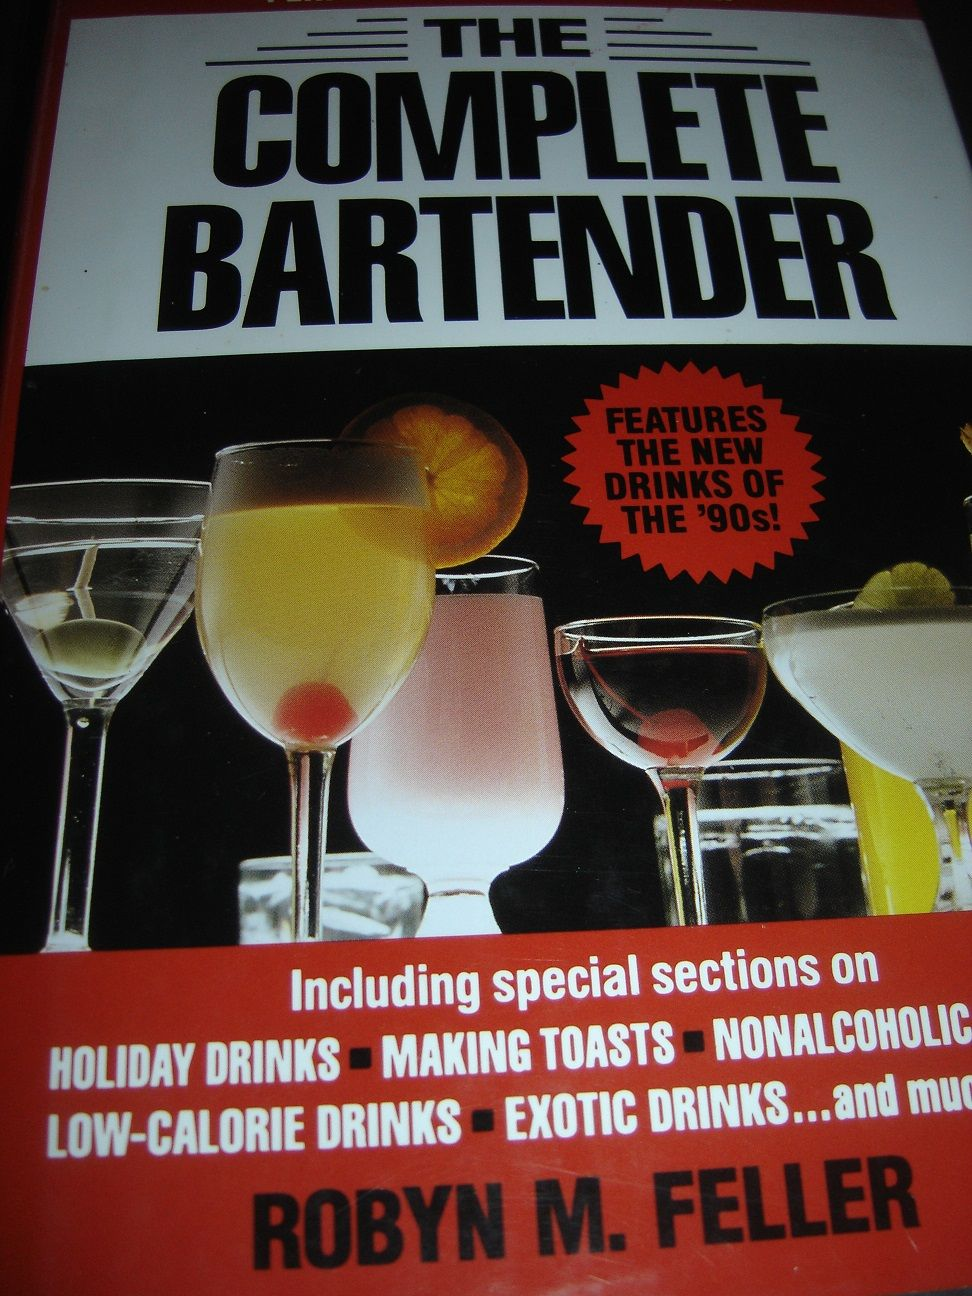 The Complete Bartender By Robyn M Feller Hc Dj 1990 Low Calorie Drinks Bartender Holiday Drinks